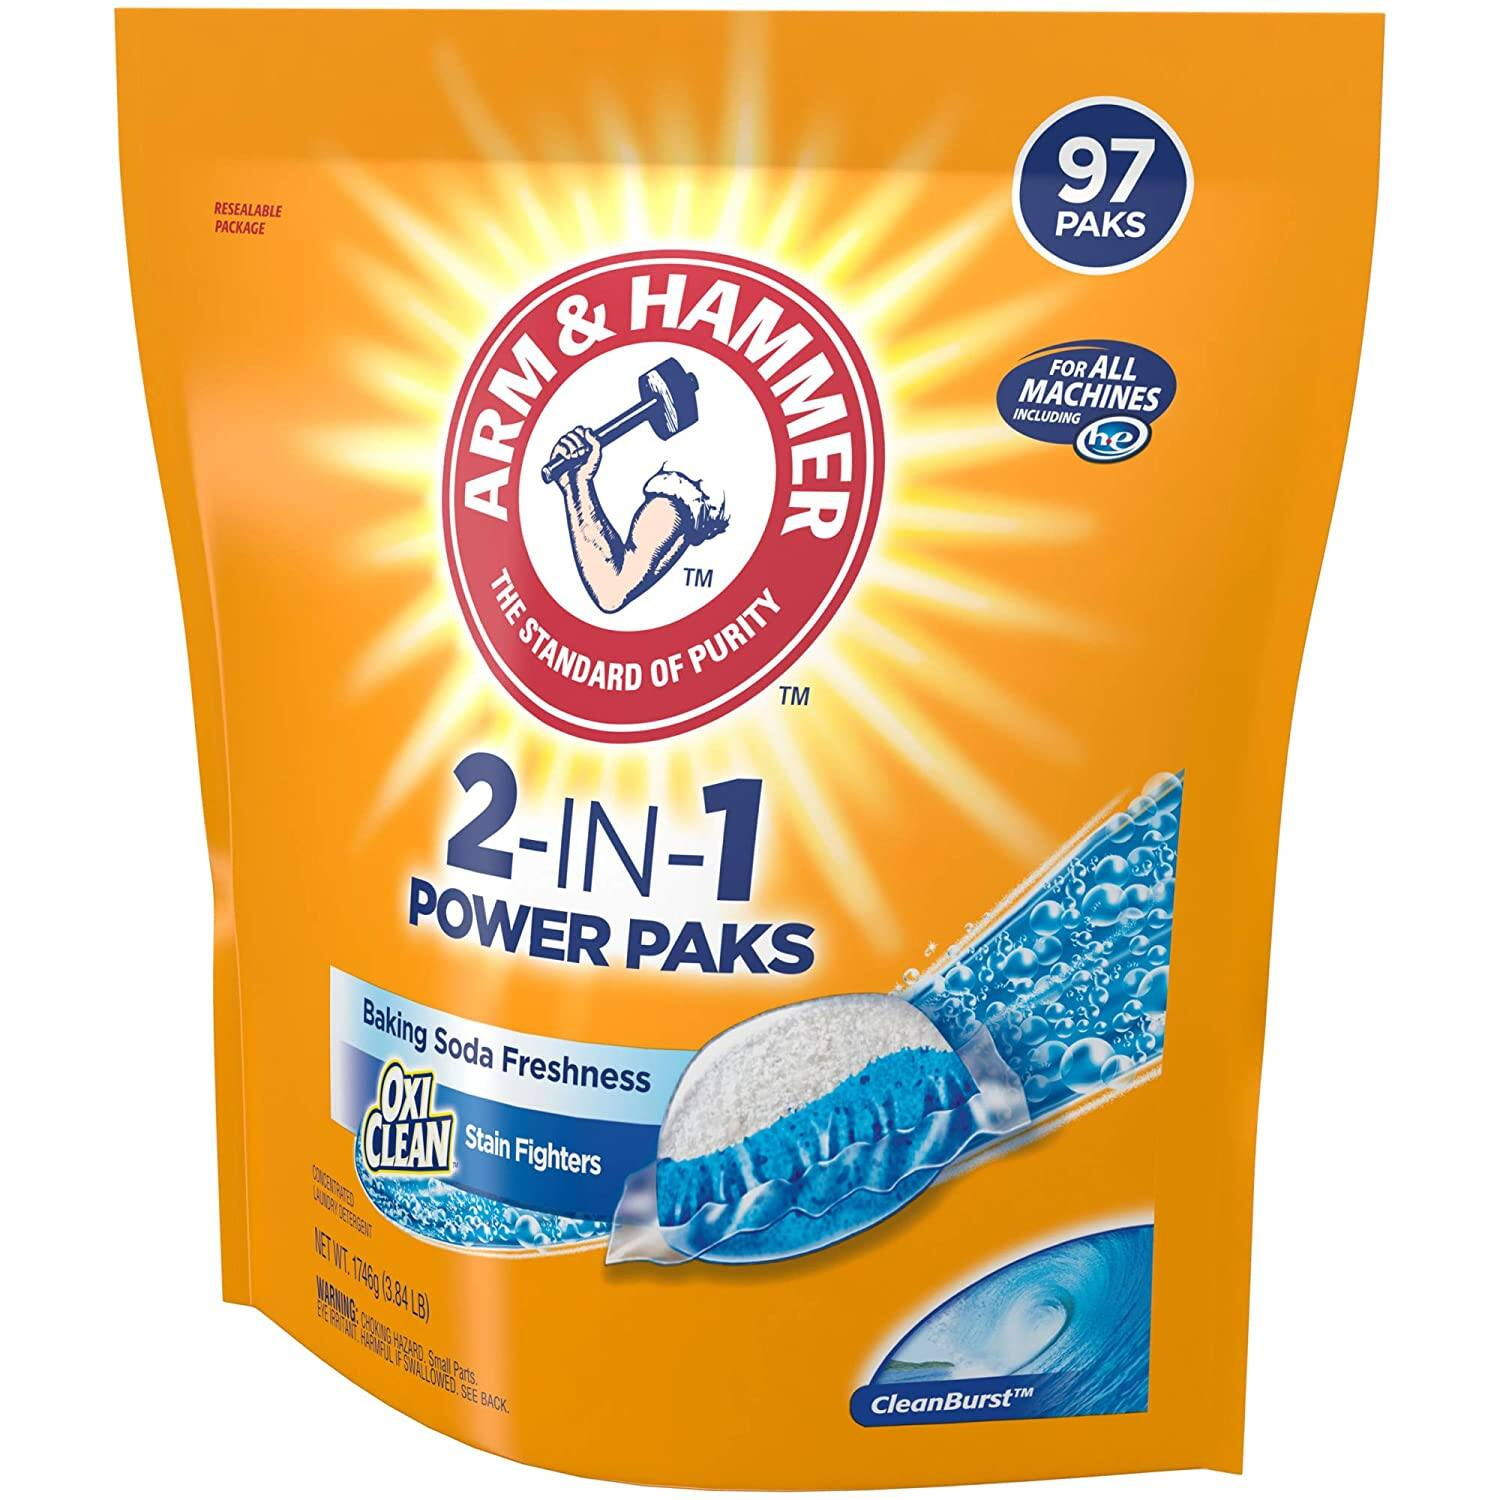 97-Count Arm & Hammer 4-in-1 Laundry Detergent Power Paks for $8.92 + FS